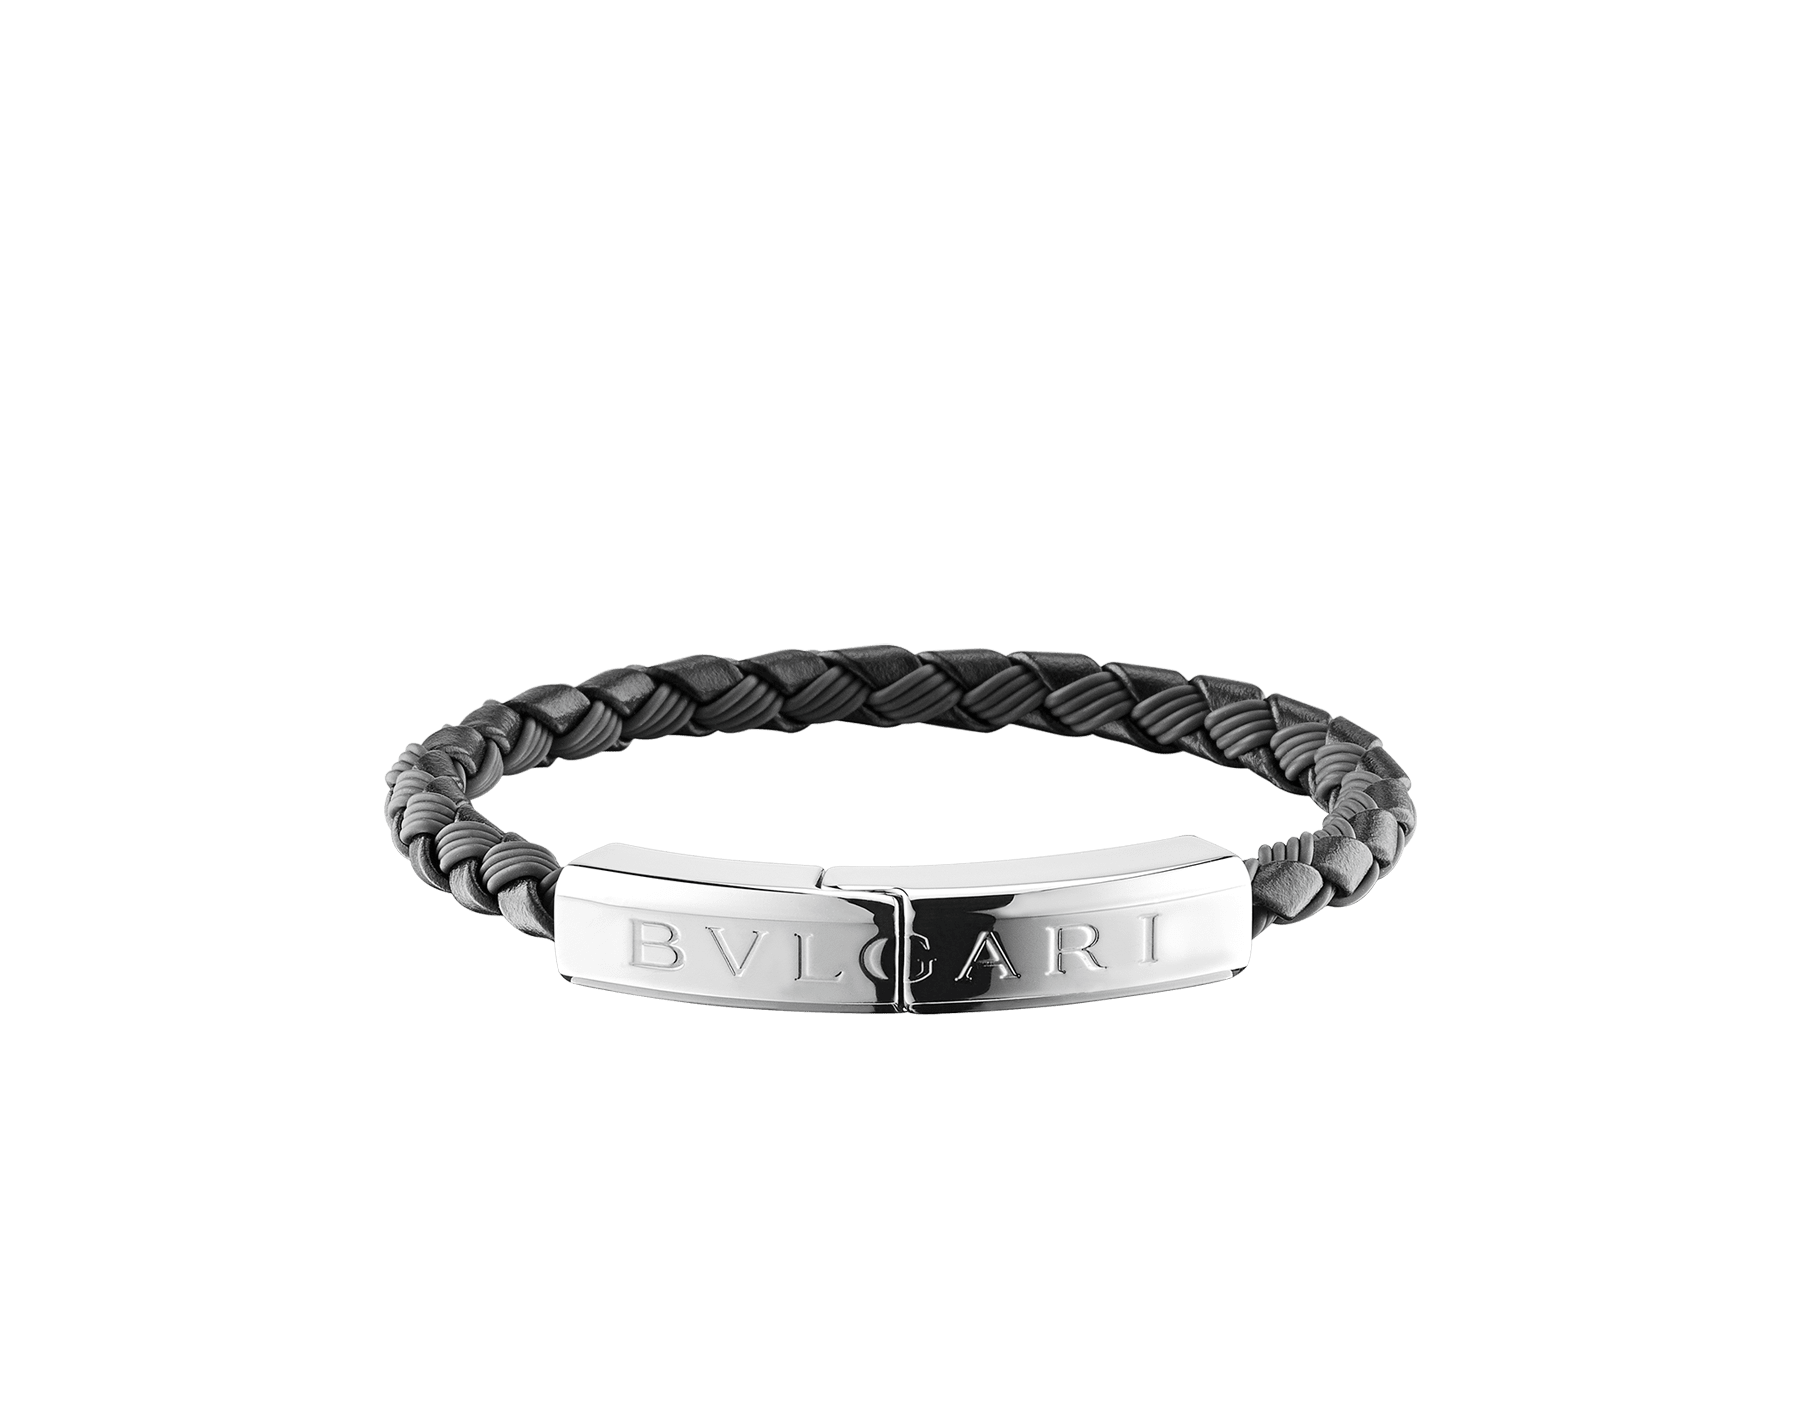 """""""BVLGARI BVLGARI"""" bracelet in black calf leather and black rubber with a silver plated closure with Bvlgari logo. LogoPlate-CLR-B image 1"""